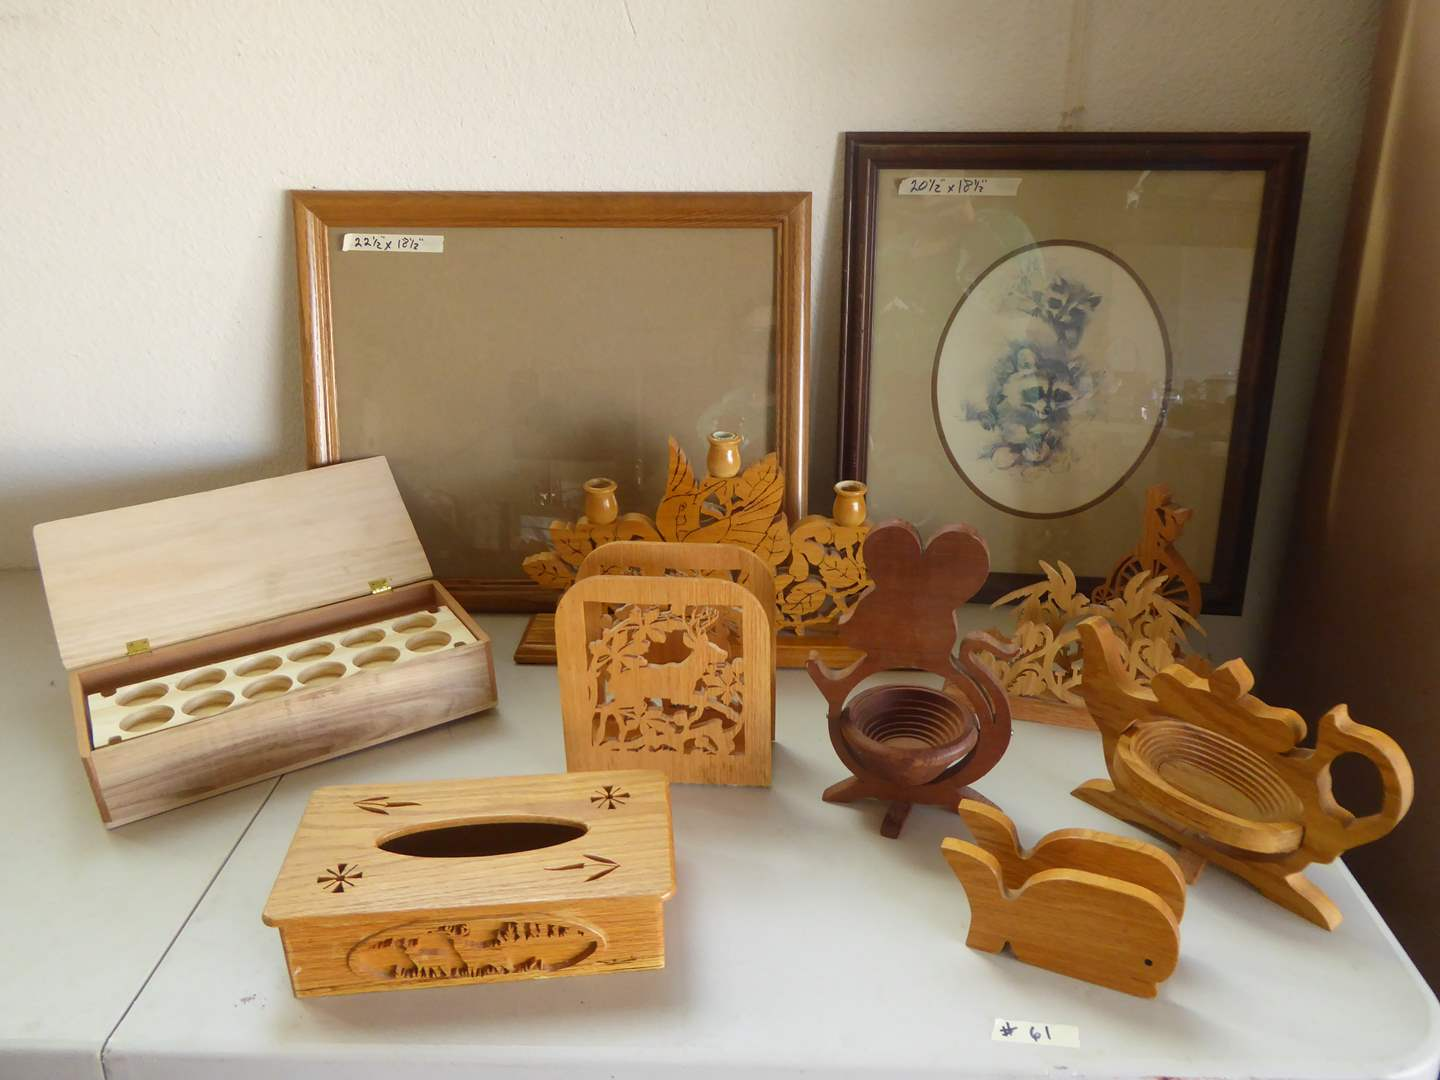 Lot # 61 - Framed & Matted Paul Whitney Hunter Print & Carved Wooden Decor  (main image)